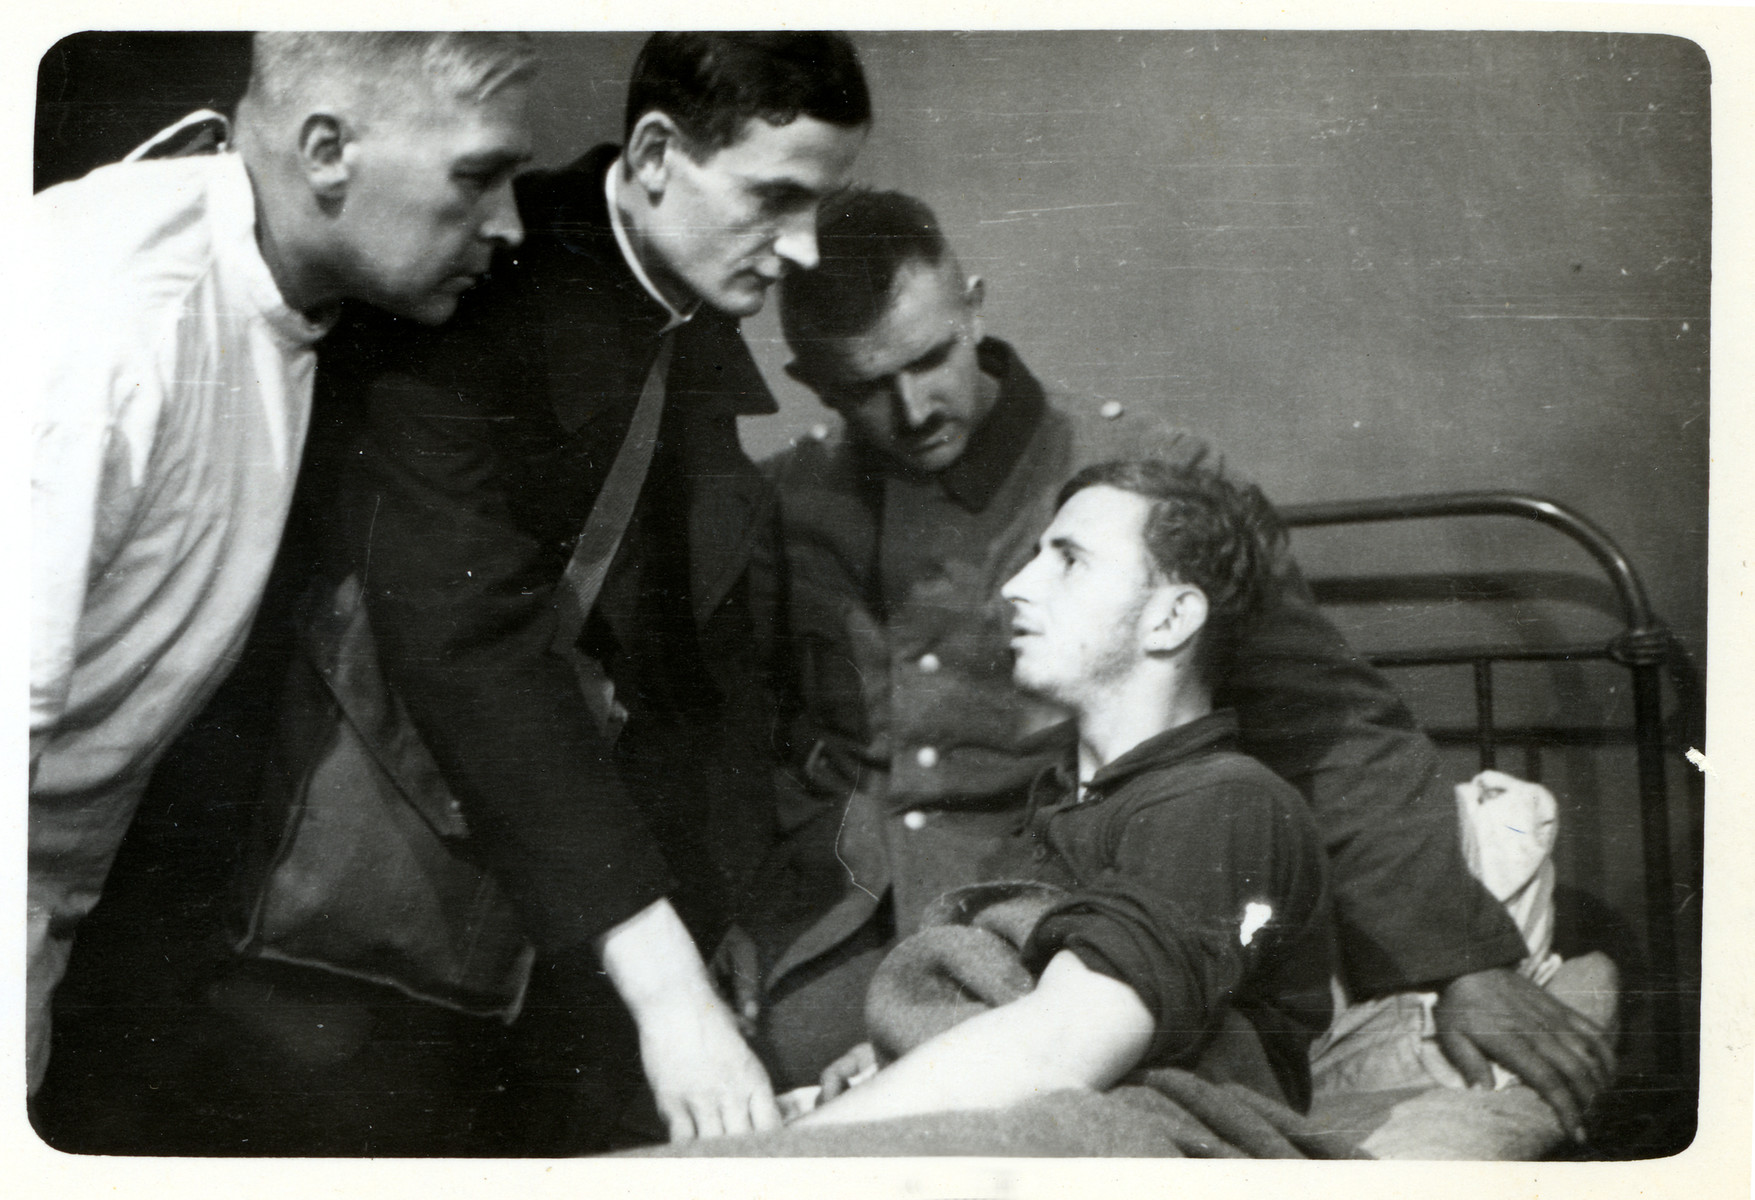 A Polish priest visits wounded German POWs in besieged Warsaw.